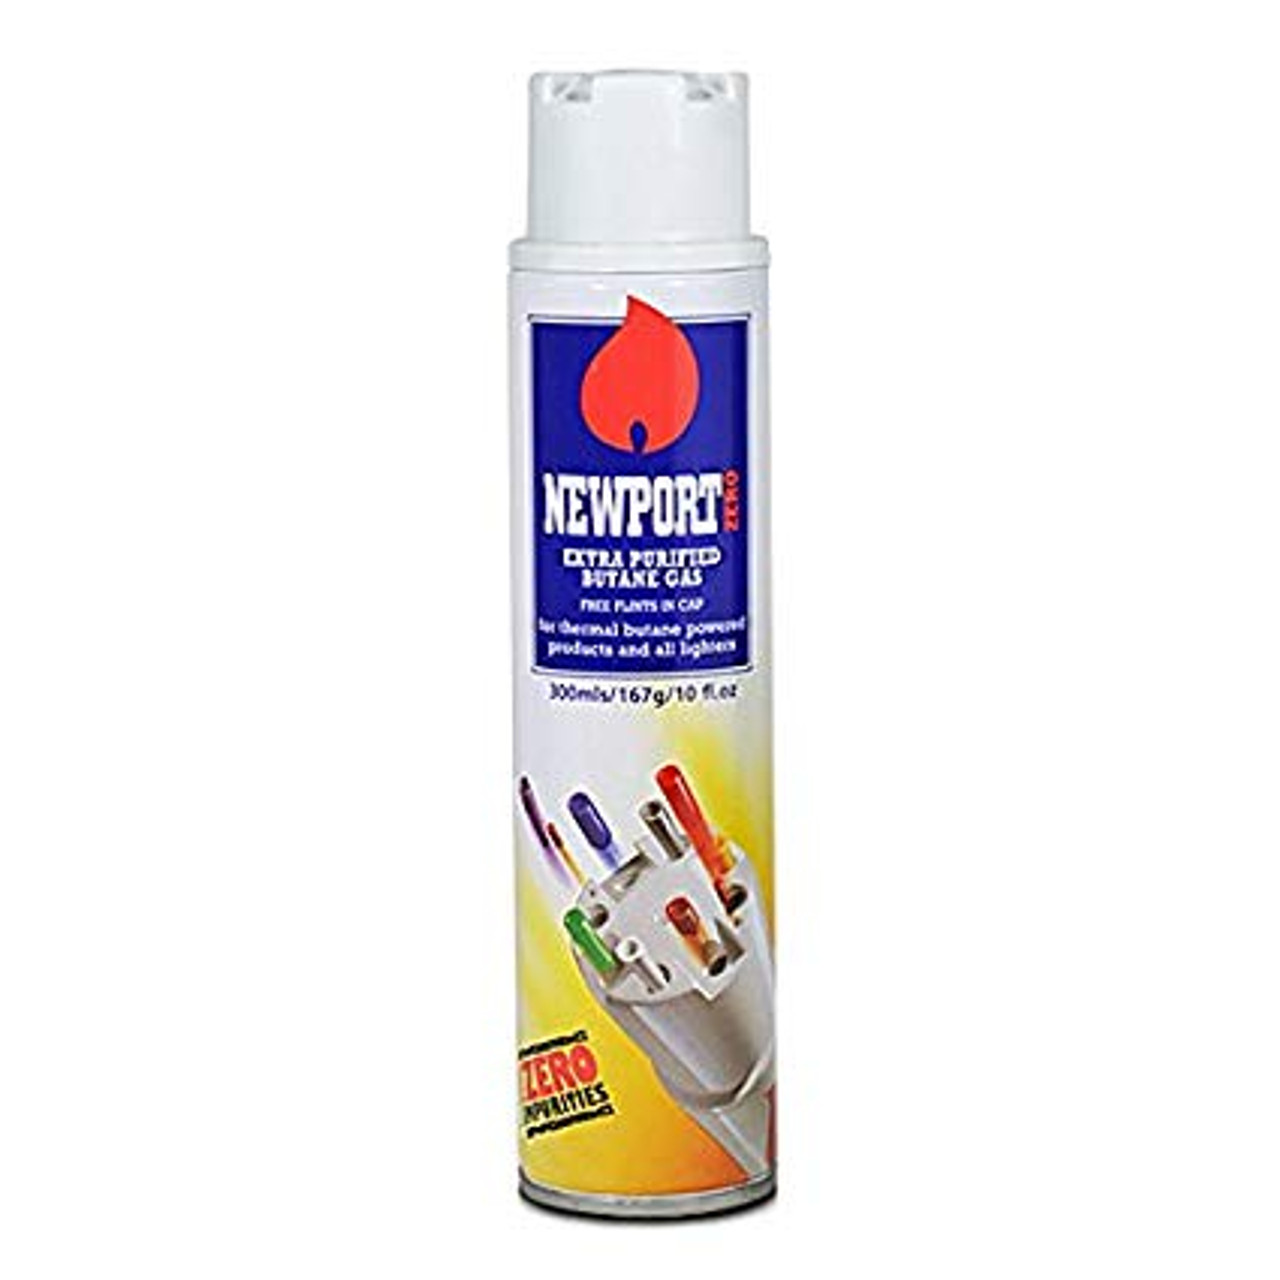 Newport Butane 300ml